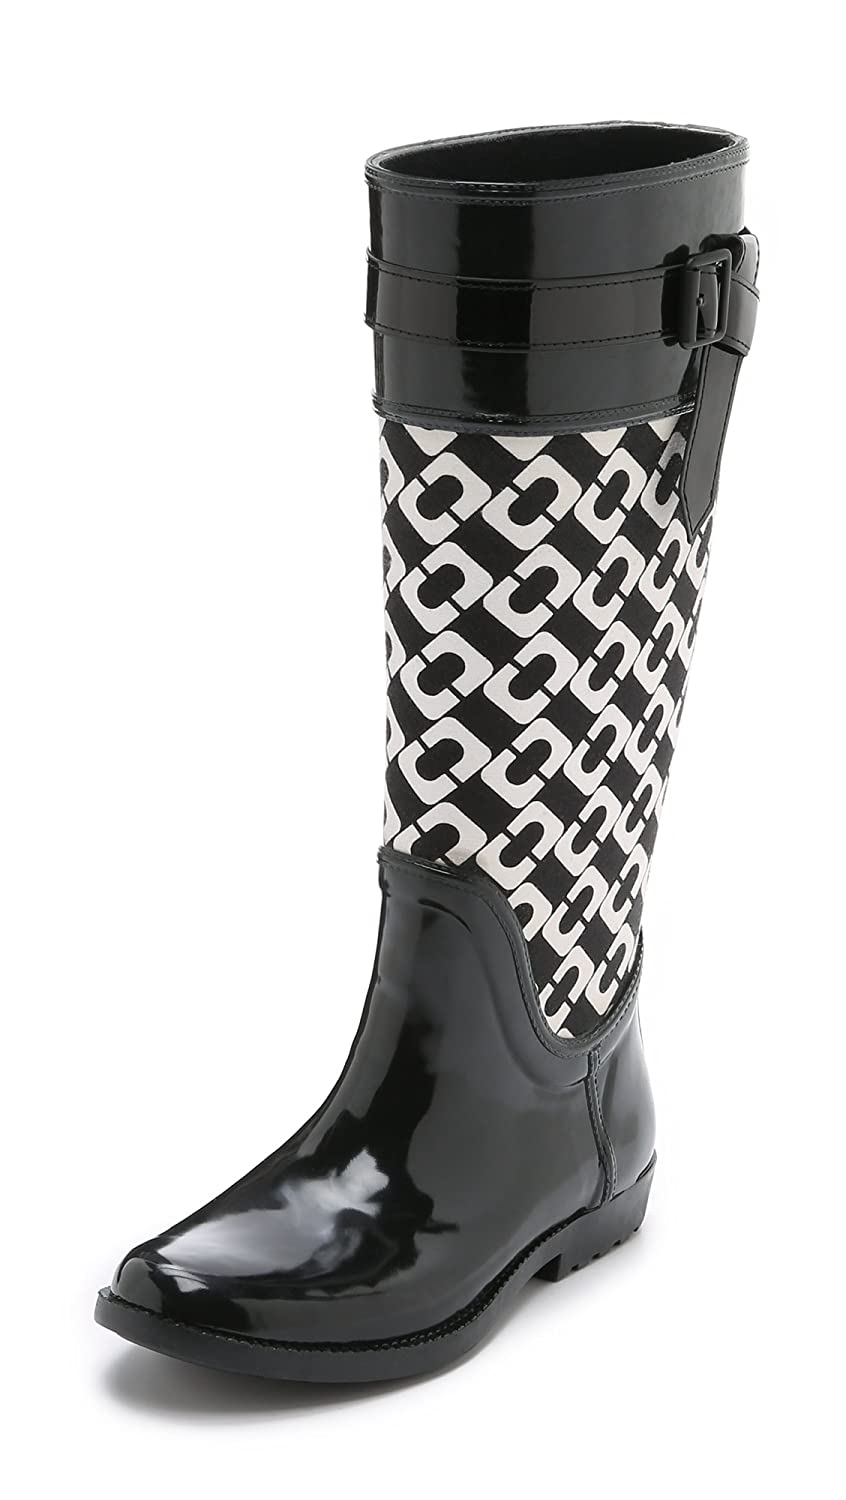 Women's Funky Rain Boots: Throw Away Your Ugly Rain Boots